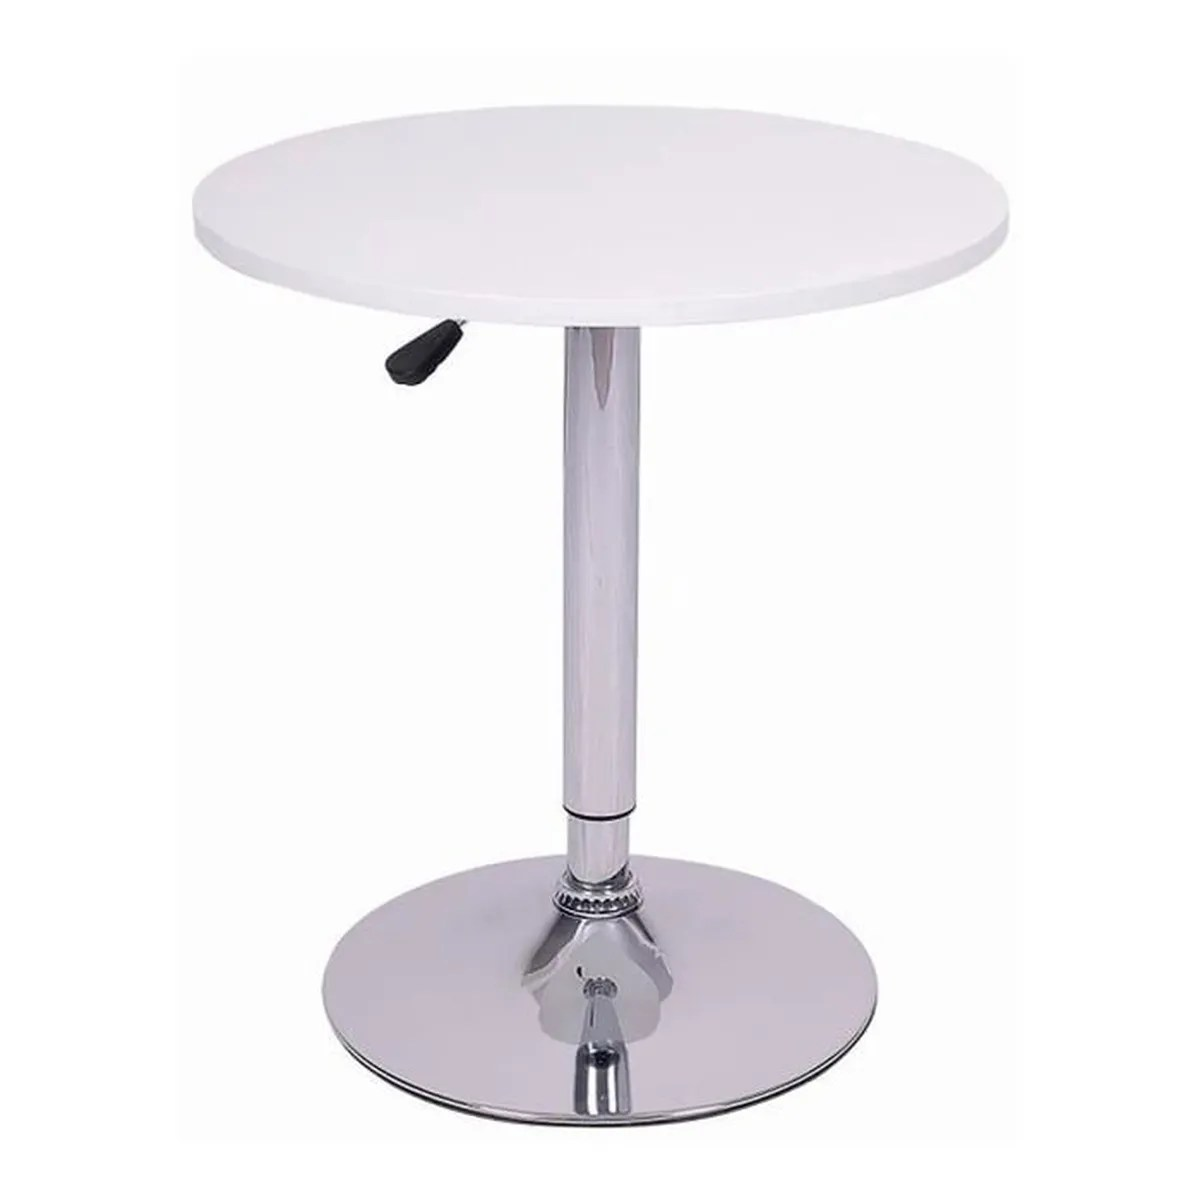 Table Haute Ronde Kit Closet 7050070501 -table Haute Ronde Blanc - Achat